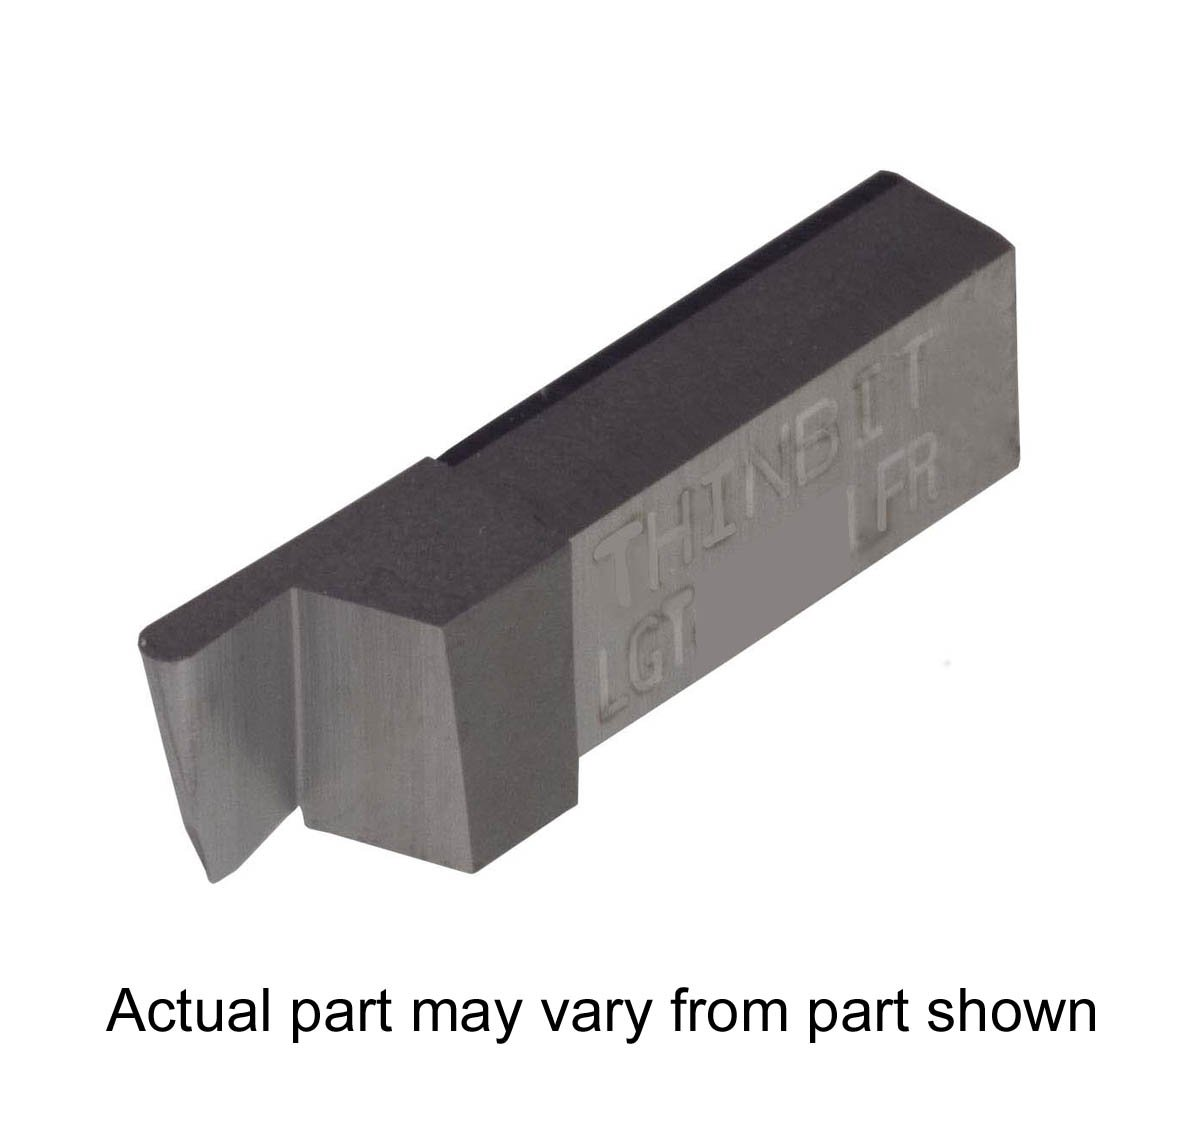 Aluminium and Plastic Without Interrupted Cuts THINBIT 3 Pack LGT041D5LFR 0.041 Width 0.102 Depth Grooving Insert for Non-Ferrous Alloys Uncoated Carbide Full Radius